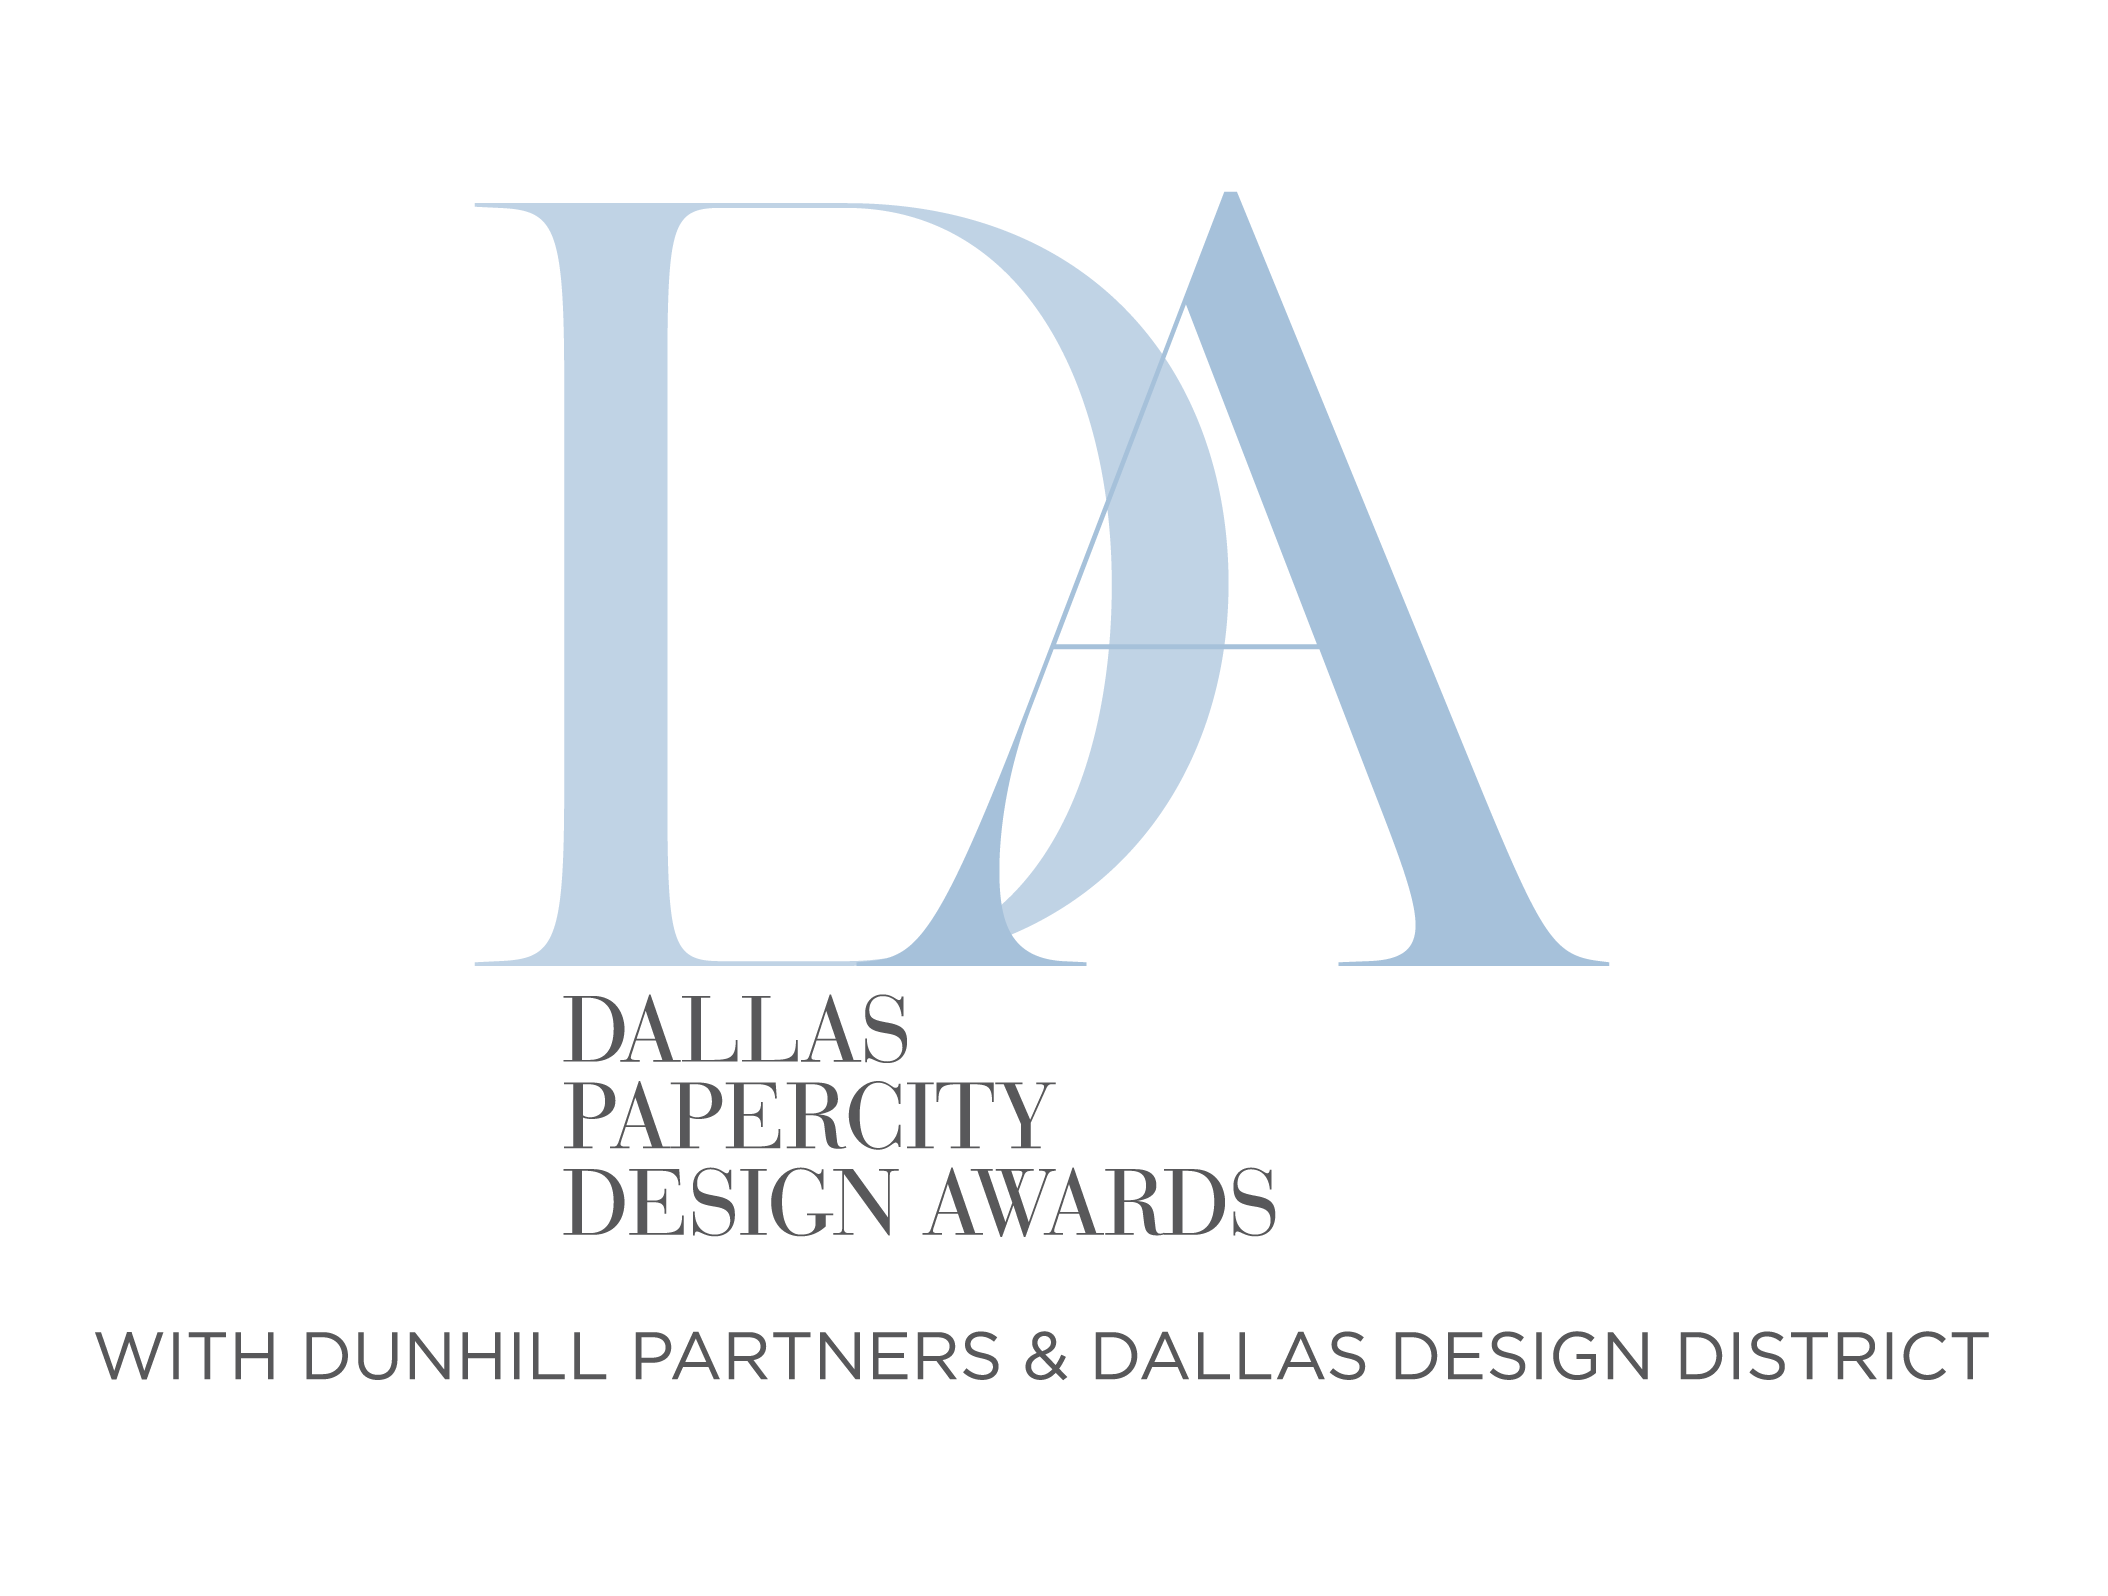 PaperCity Design Awards Dallas 2018